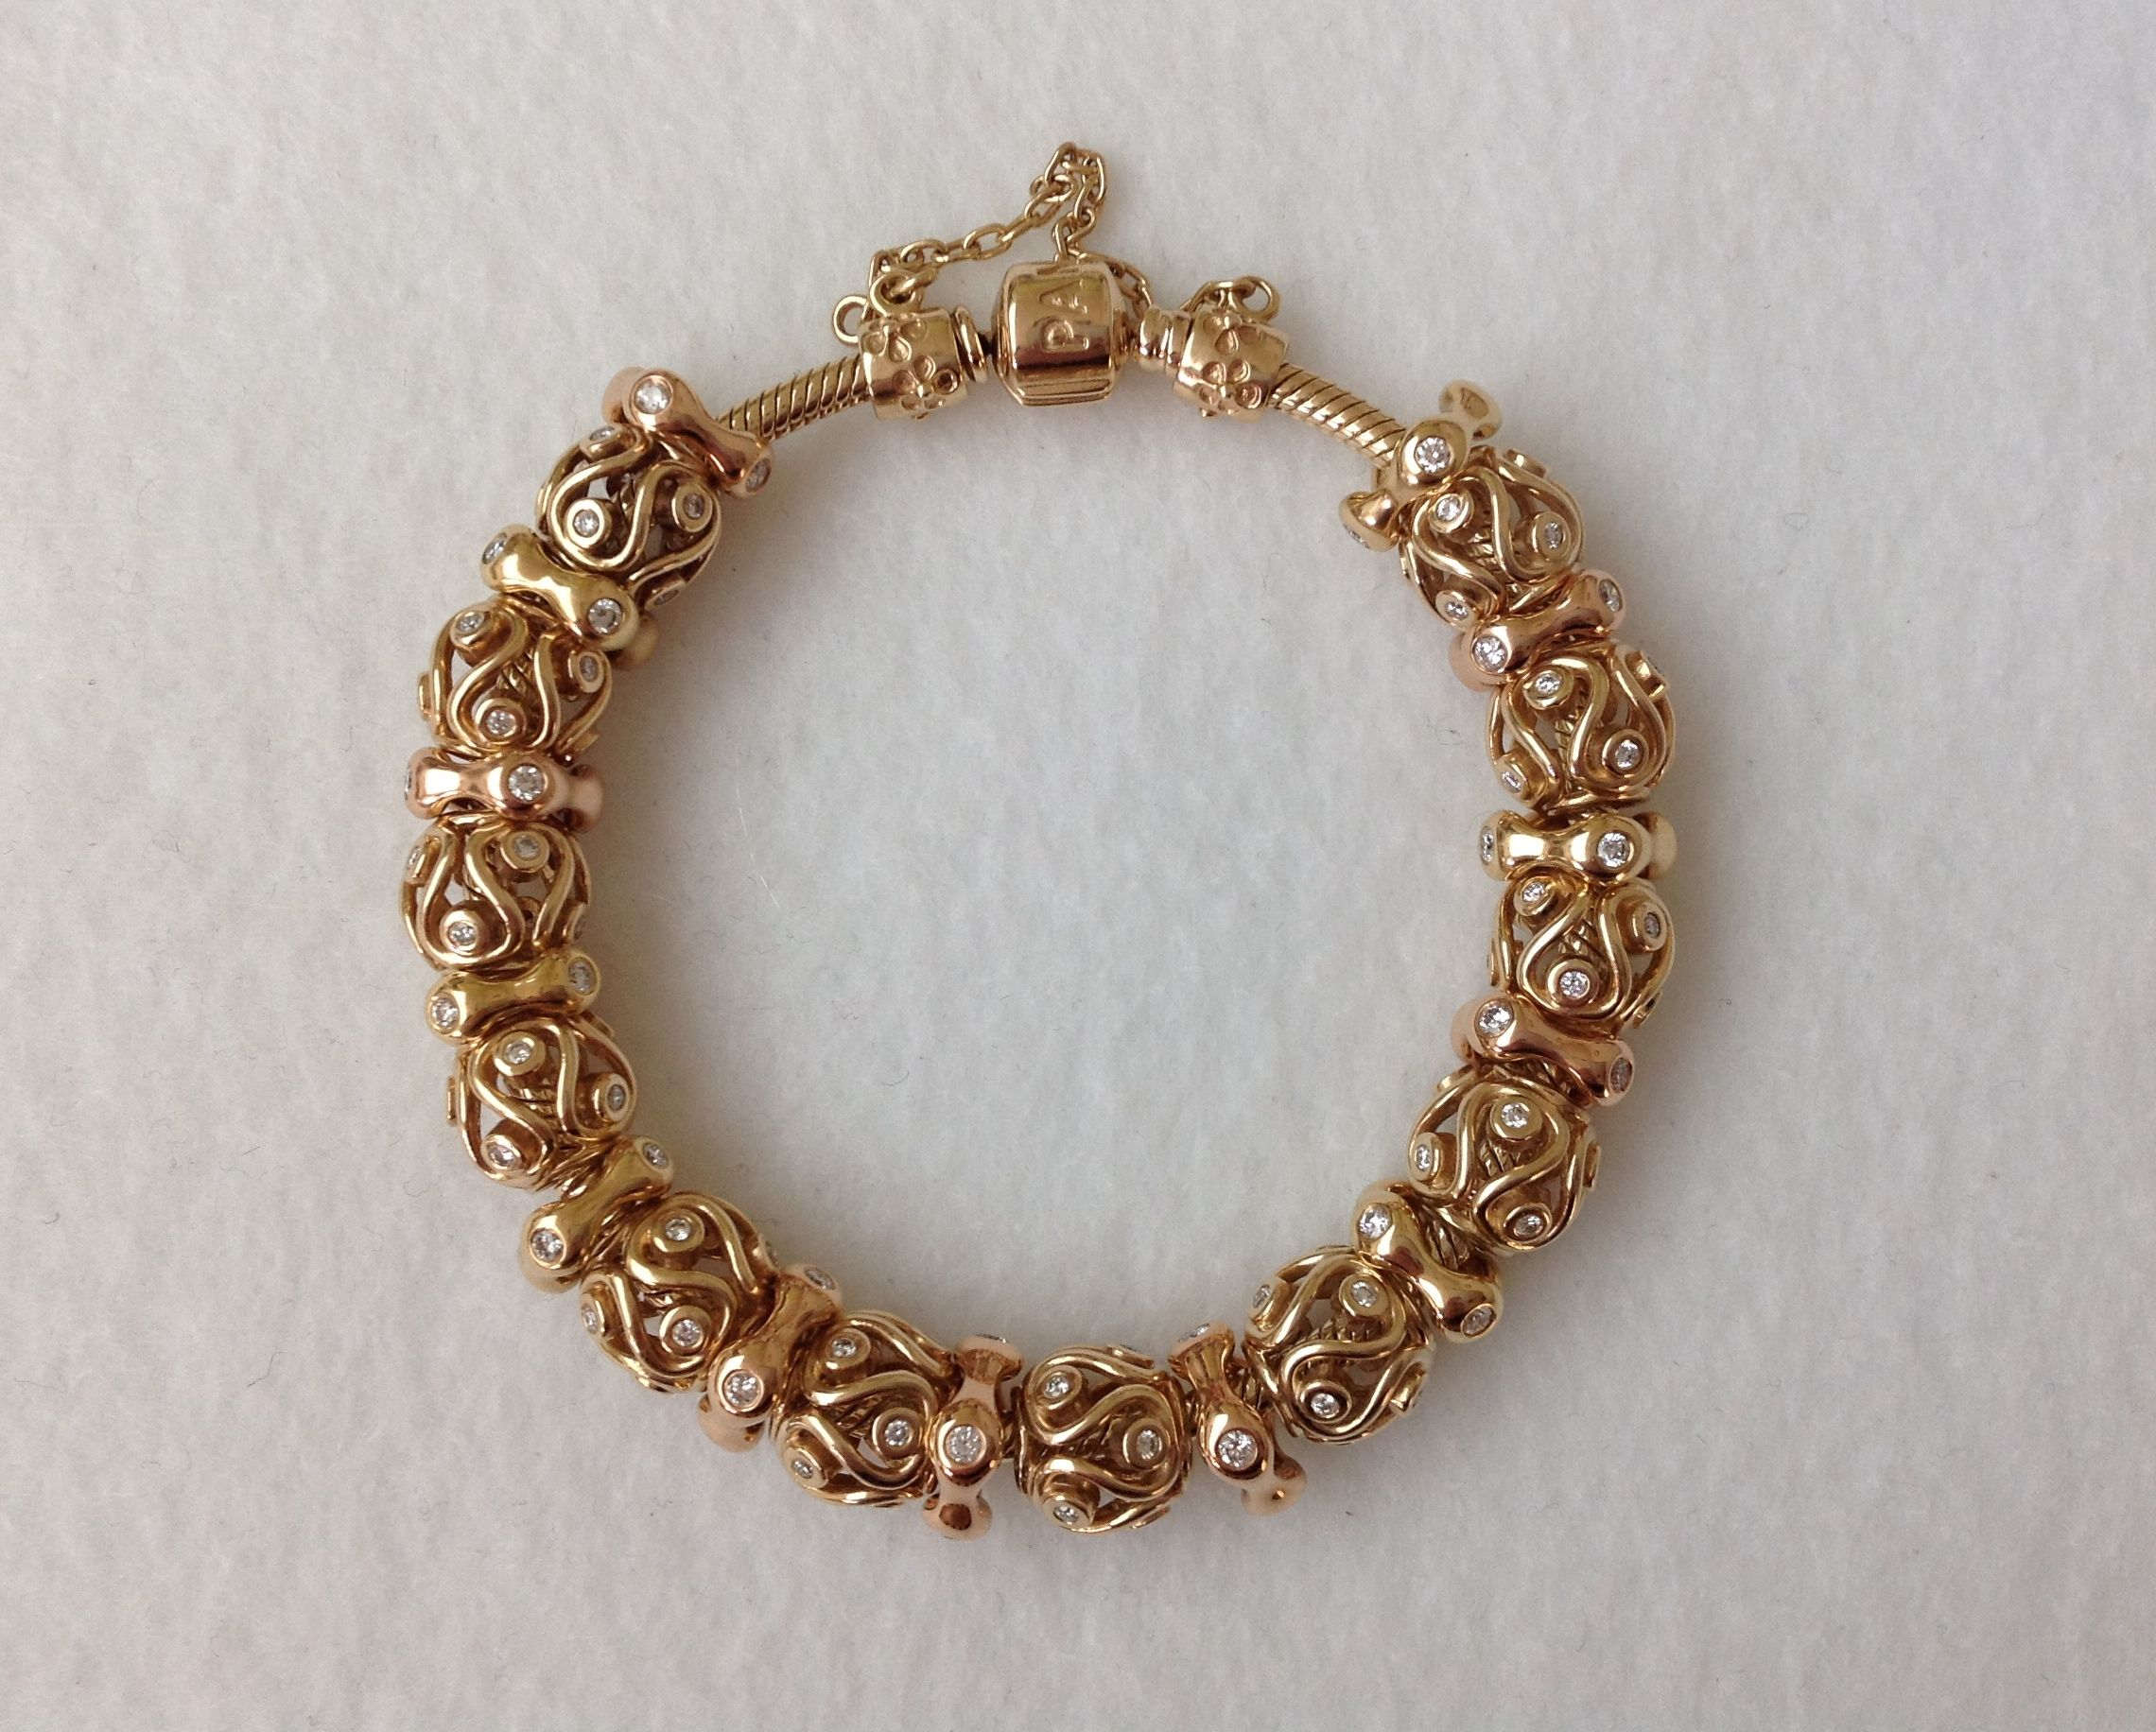 PANDORA All Gold Bracelet Simply Stunning